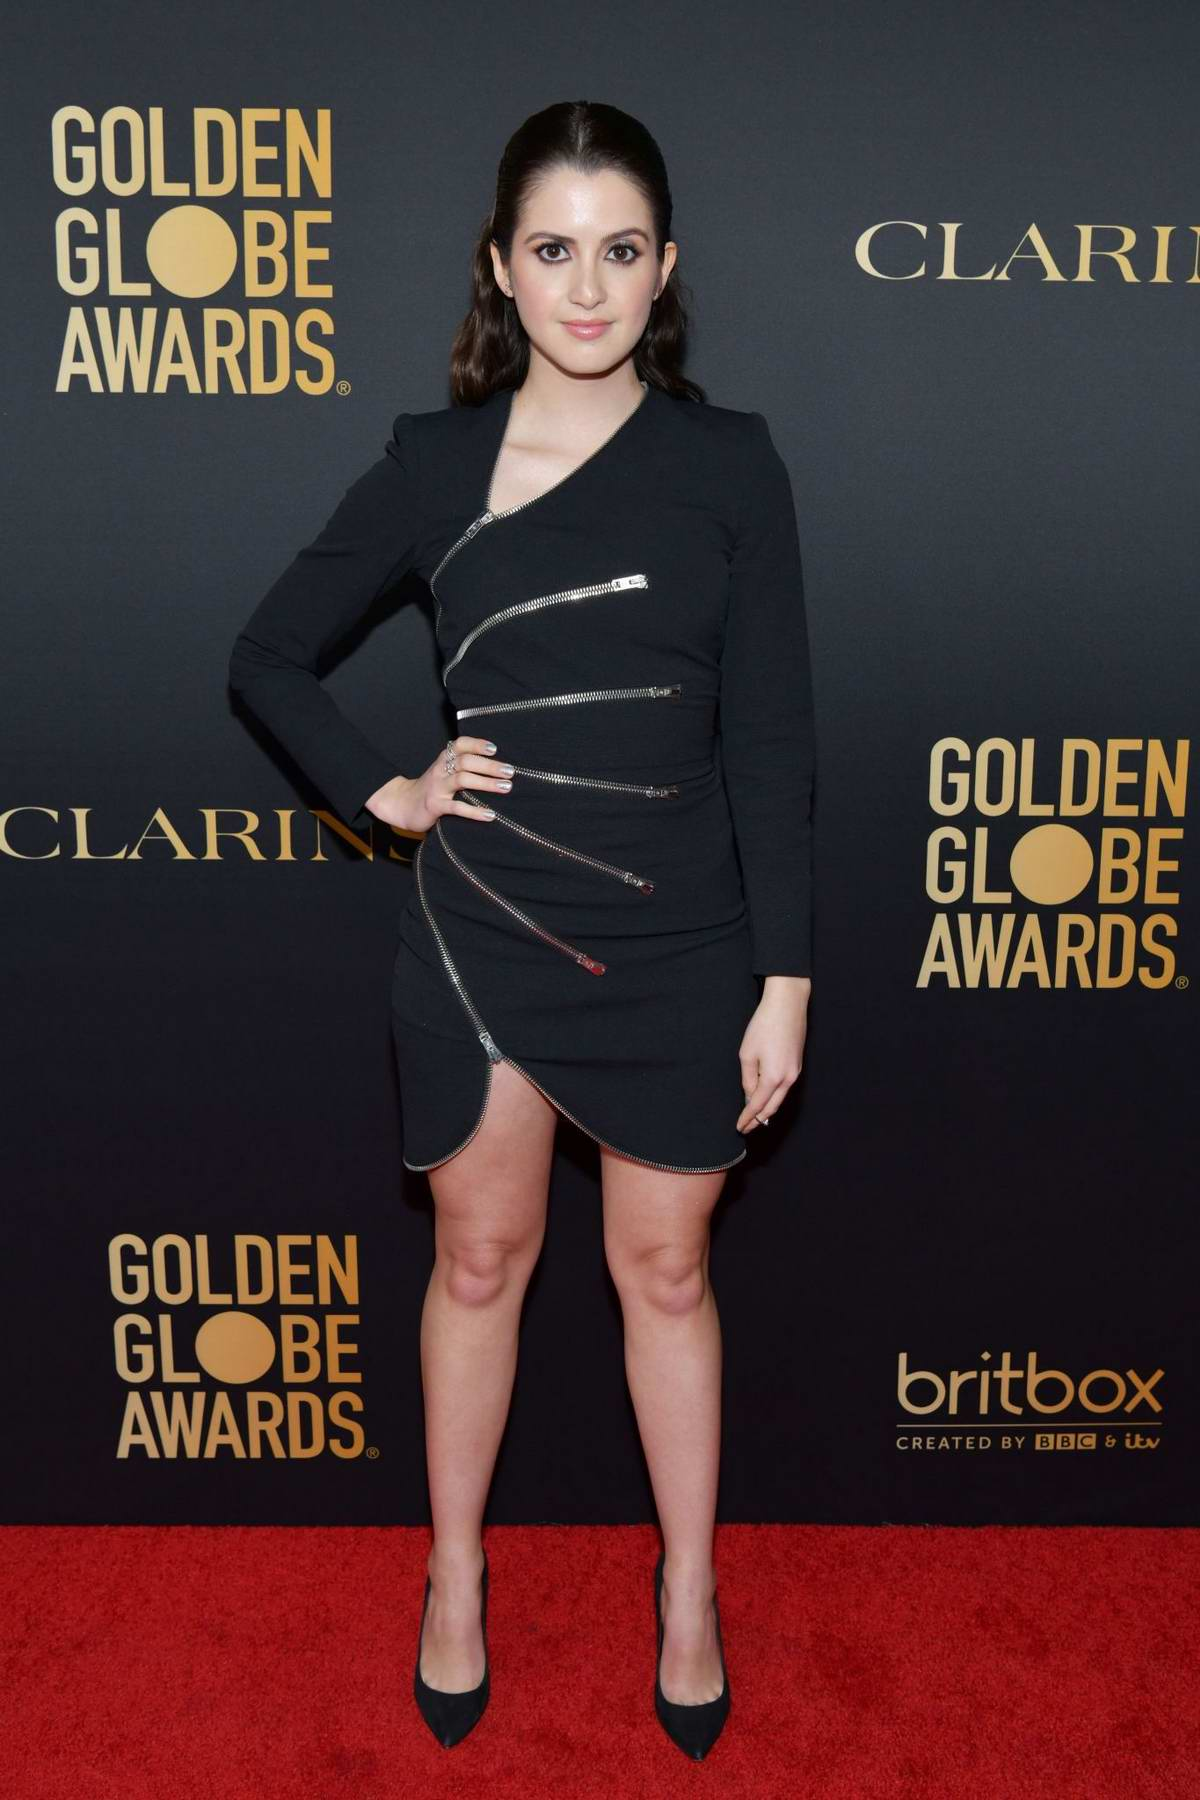 Laura Marano attends the Golden Globe Ambassador Launch Party in Los Angeles